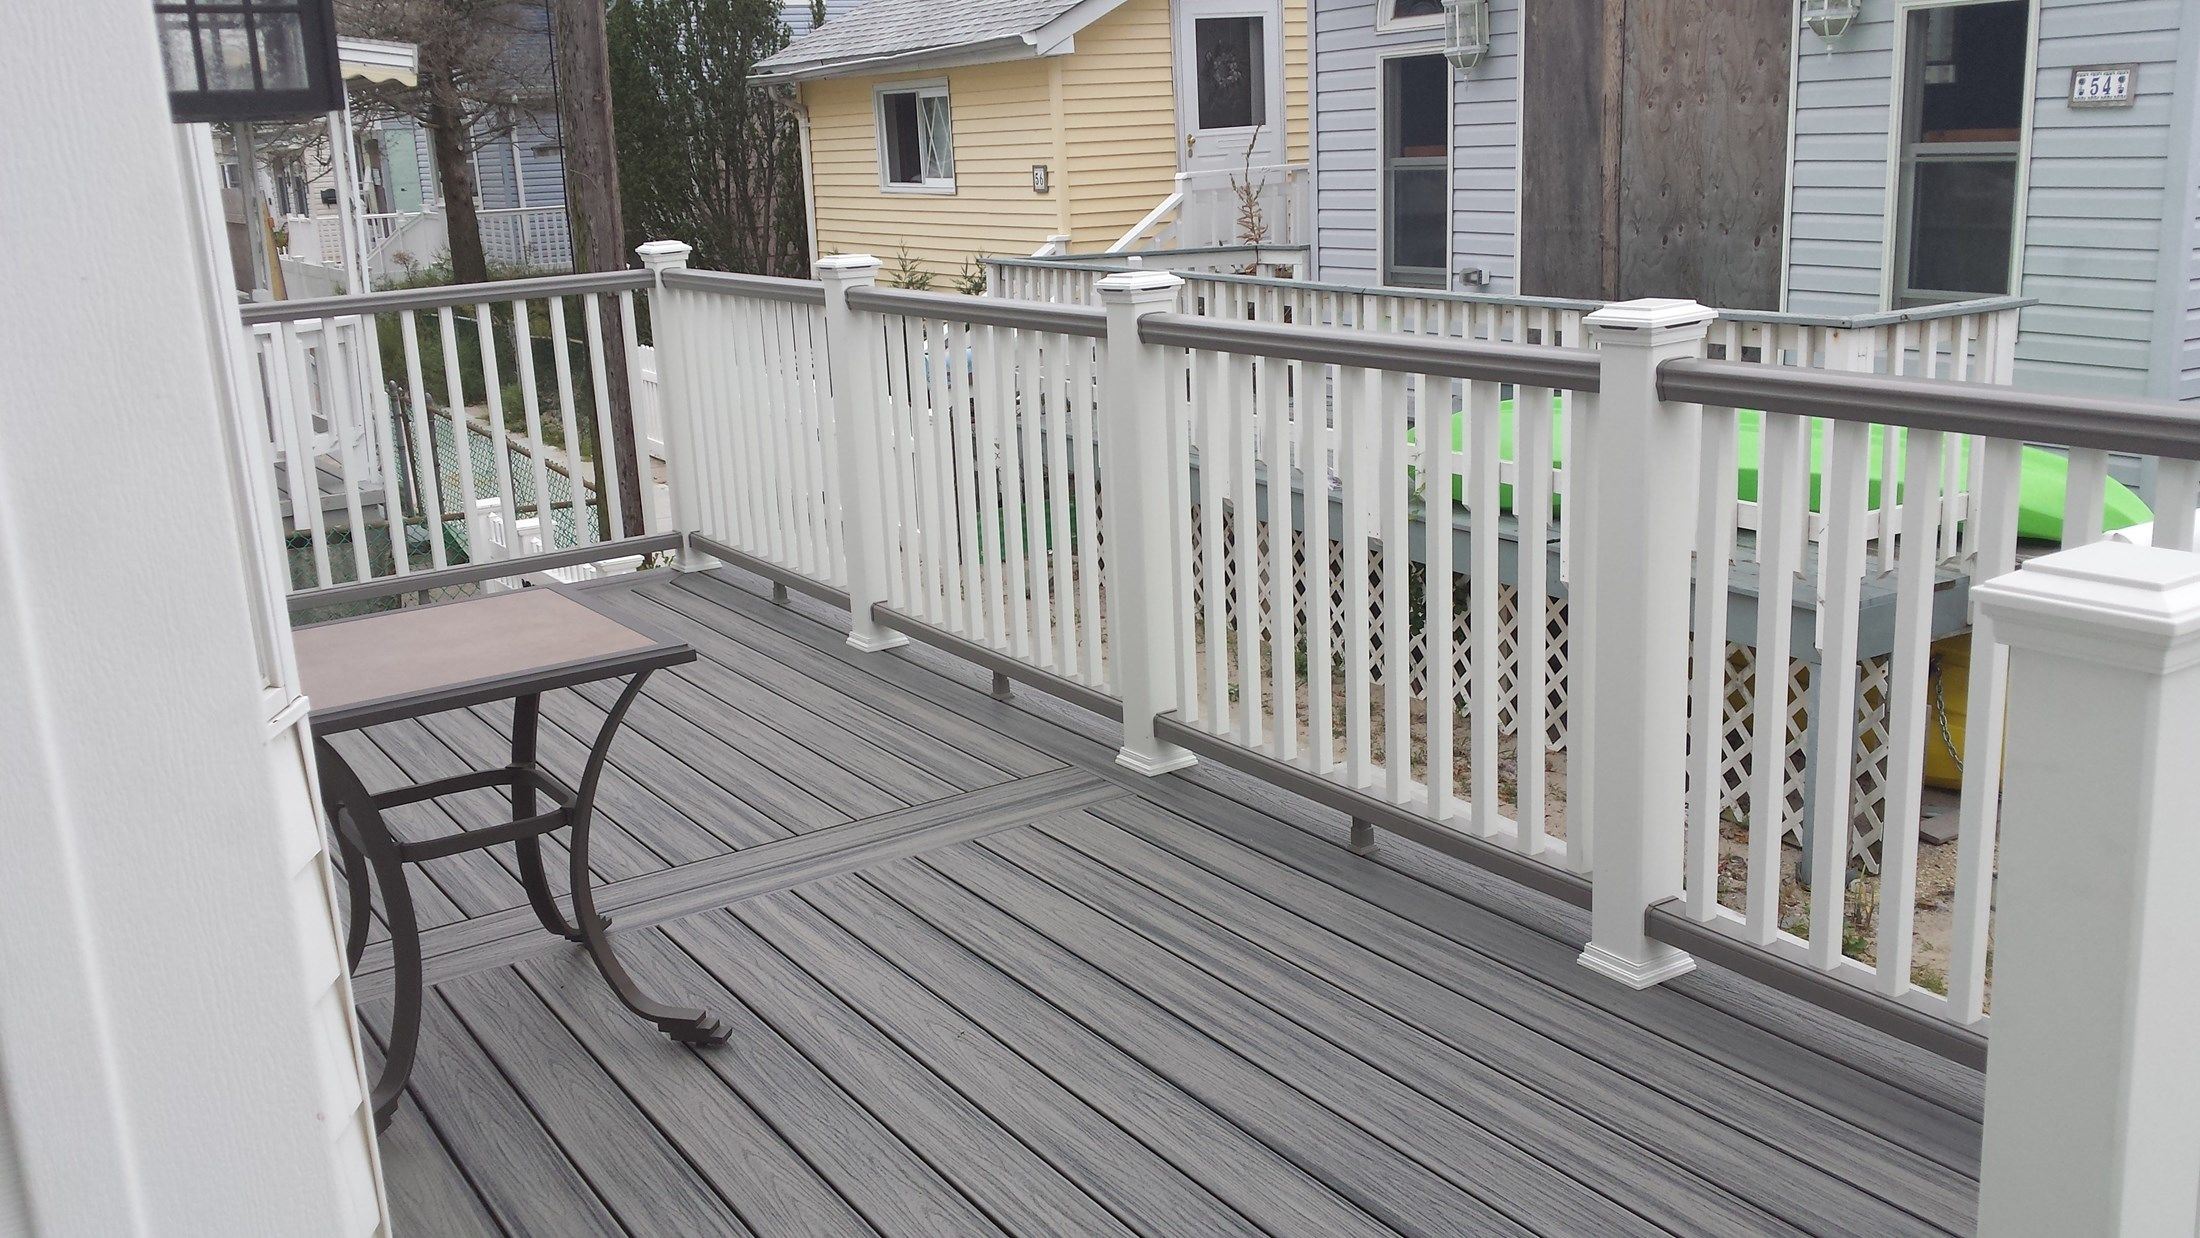 Transcends tropics island mist picture 1828 for Who makes tropics decking